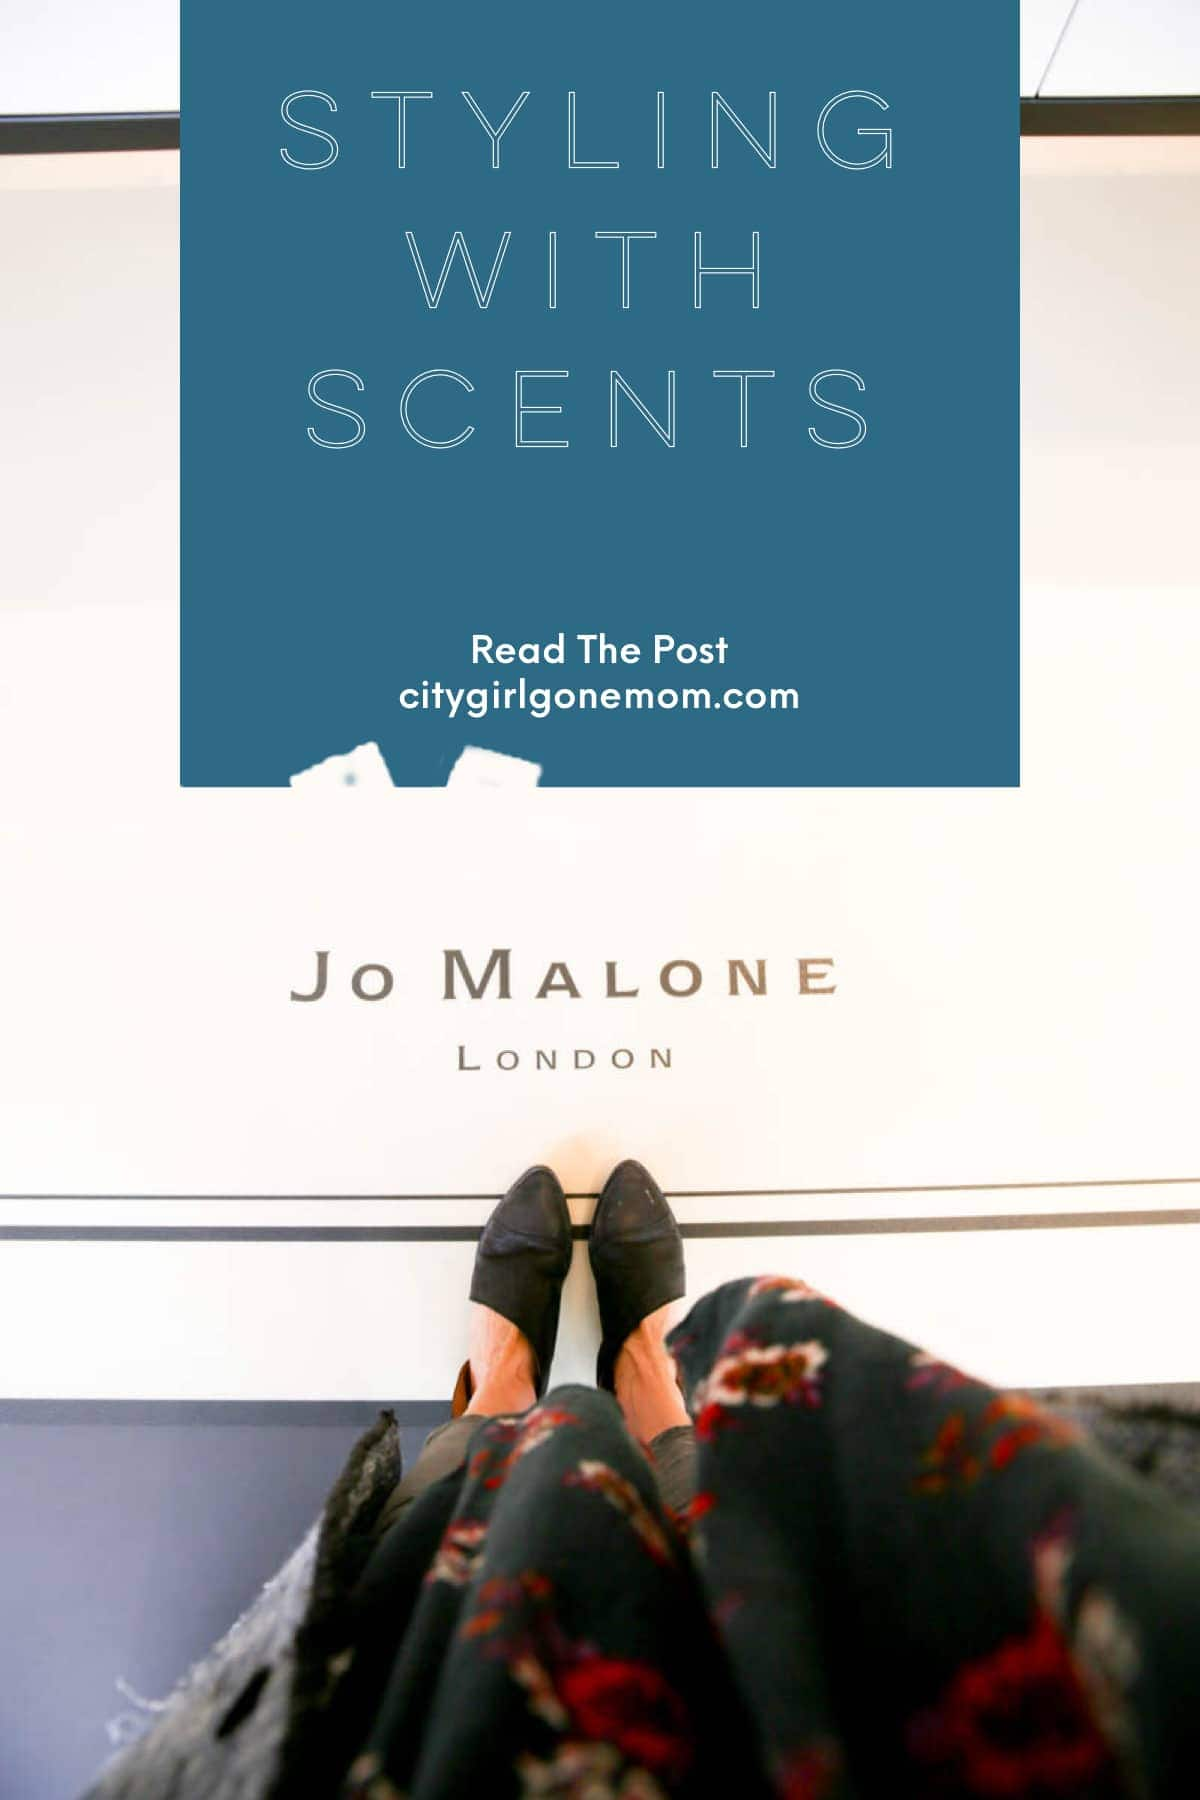 Styling With Scents At Westfield UTC - Jo Malone London Scents #citygirlgonemom #jomalone #stylingwithscents